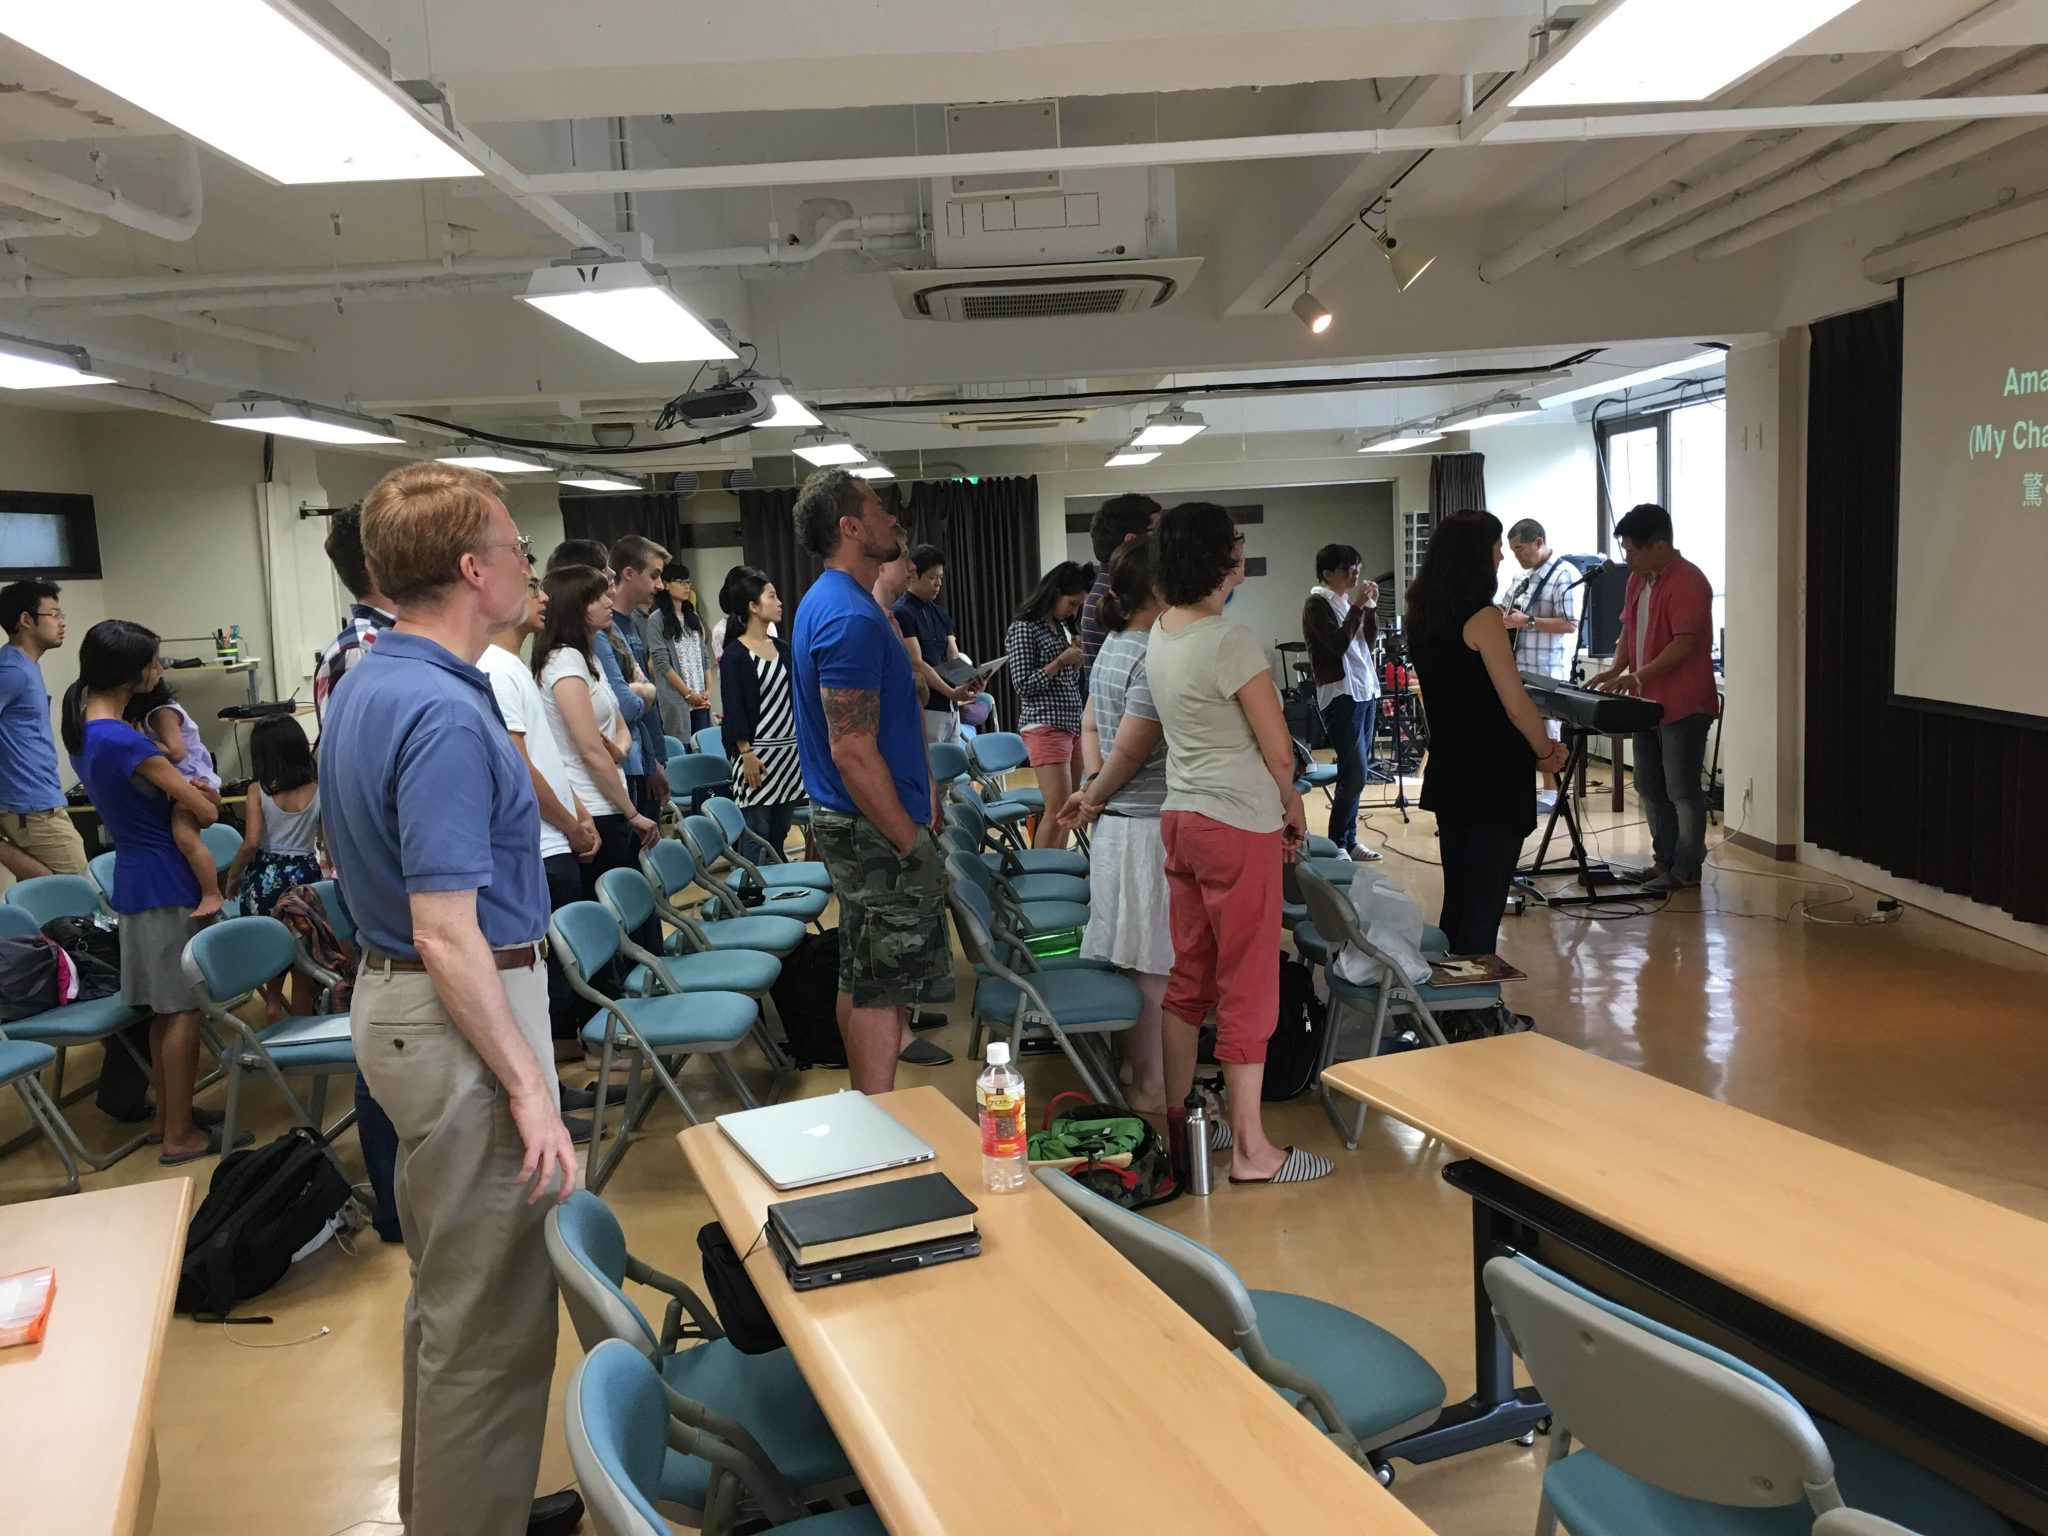 Updates from the Japan Team - Day 4